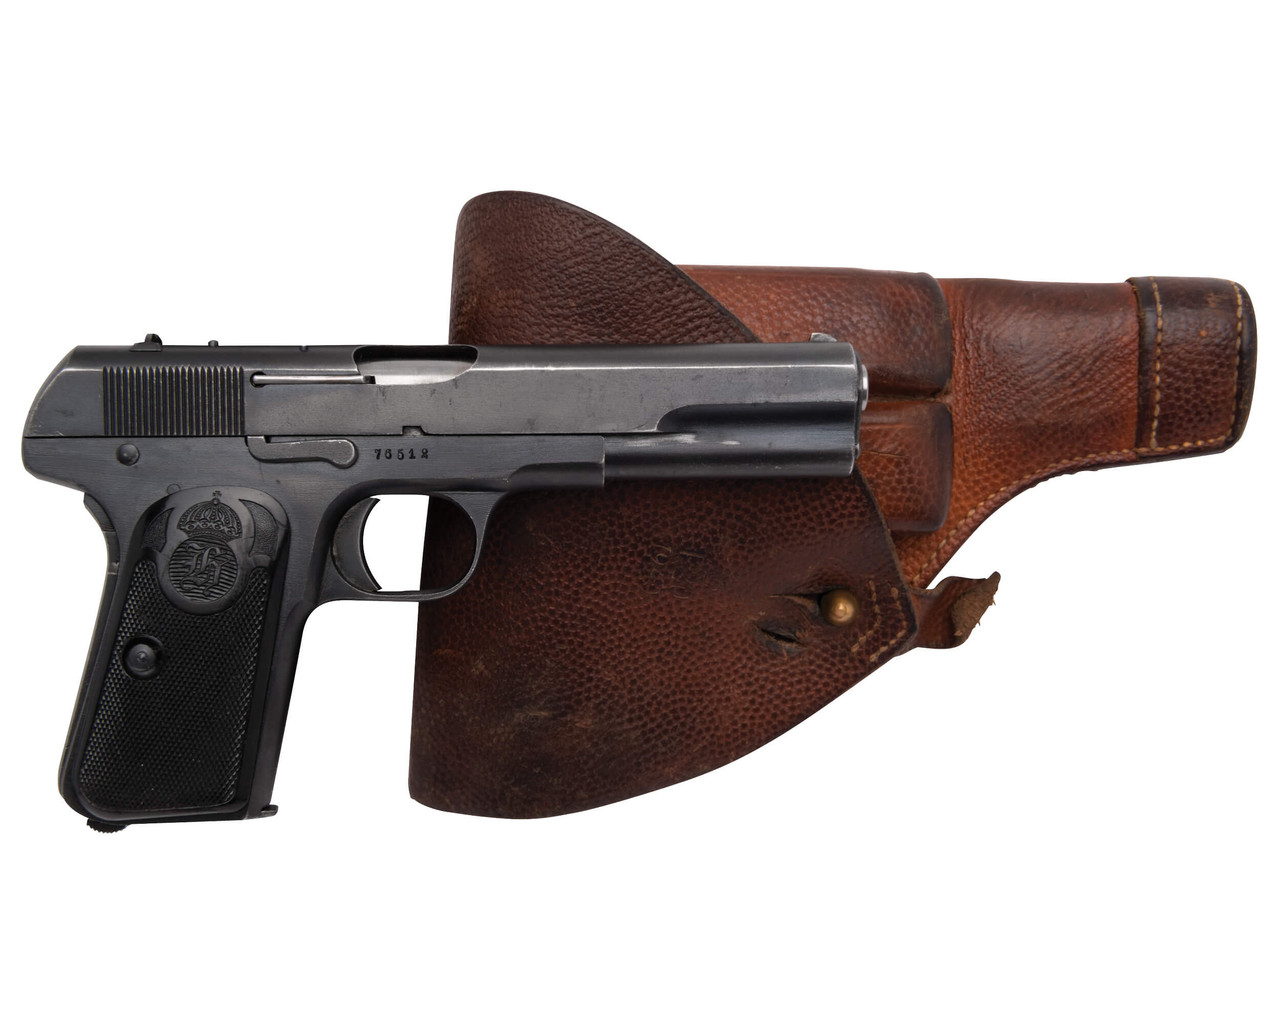 Husqvarna 1907 w/ Holster and Spare Mags - sn 76xxx